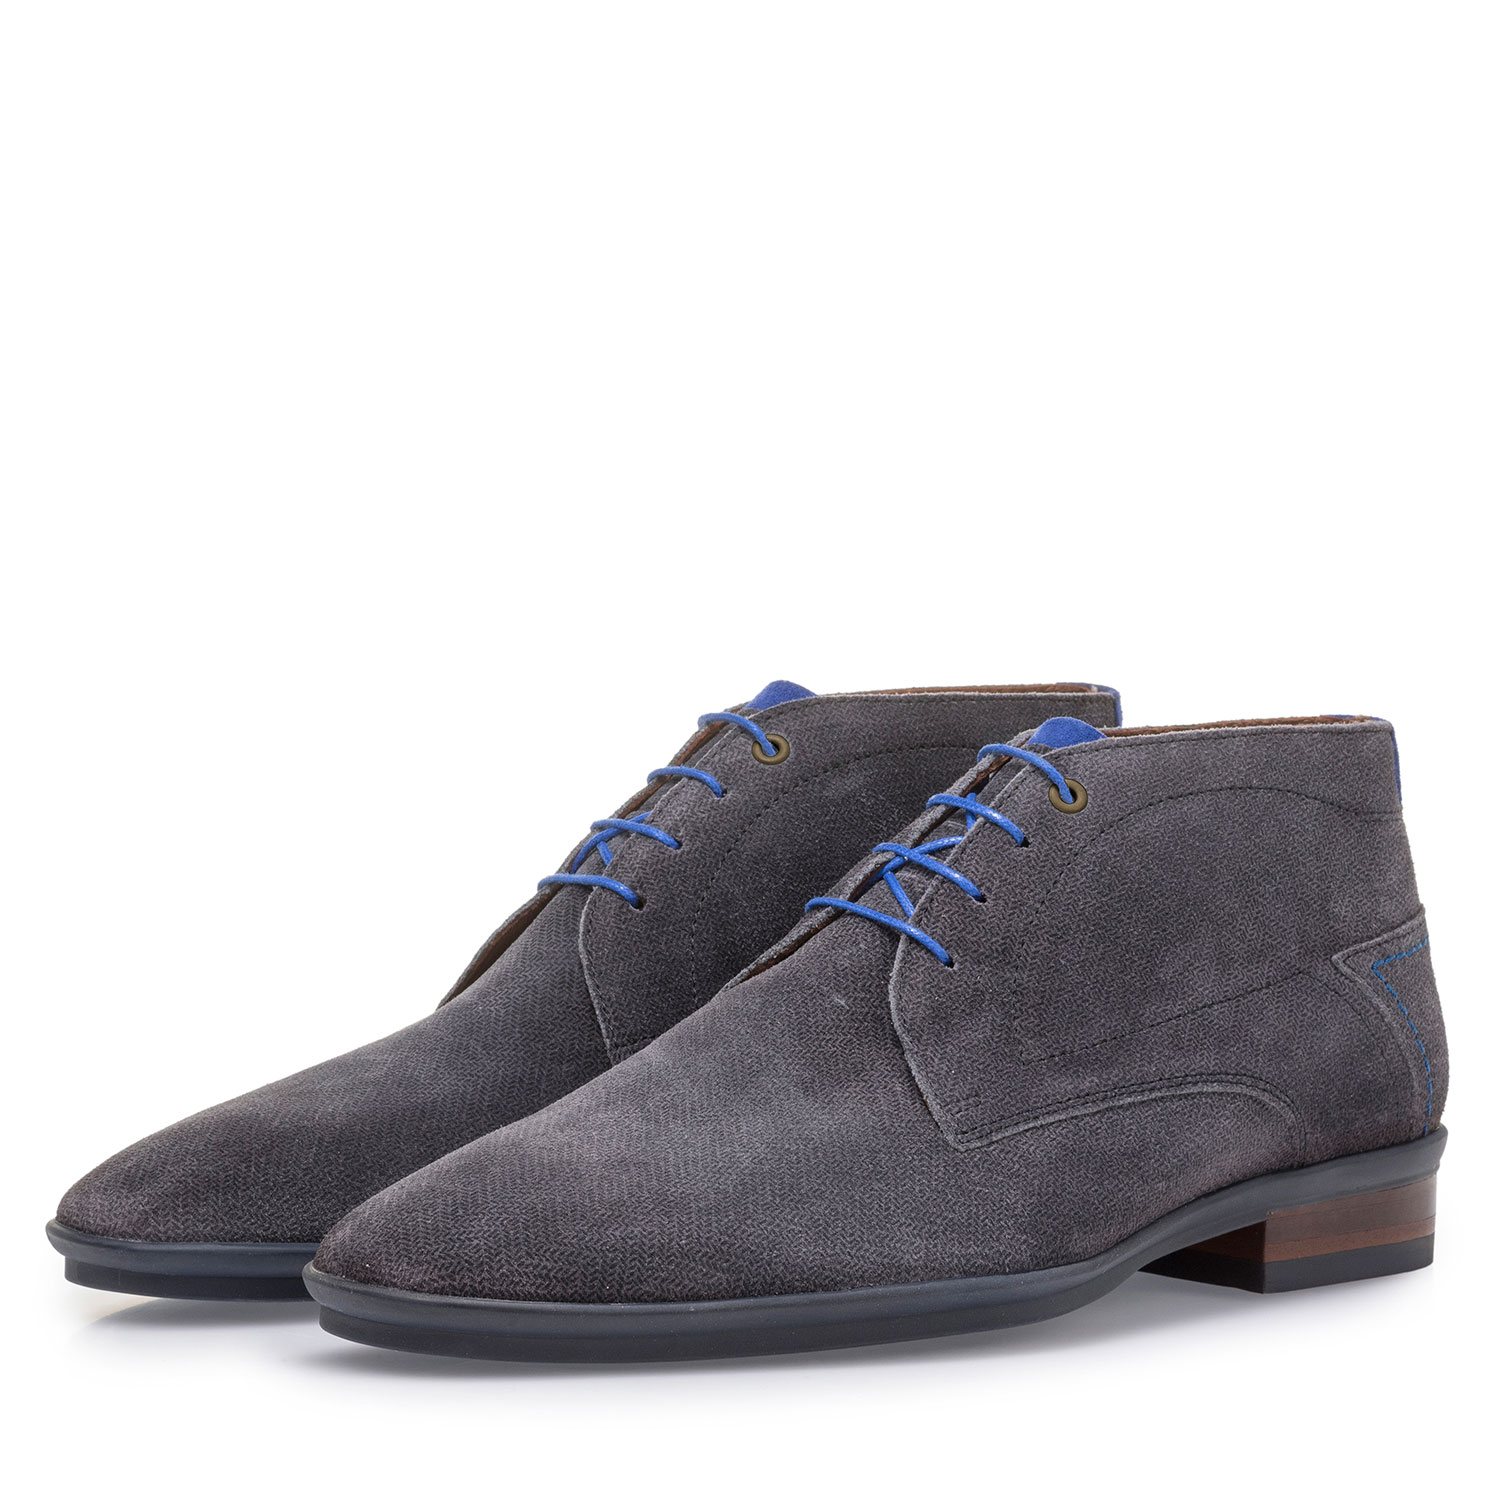 20440/02 - Dark grey suede leather lace boot with print